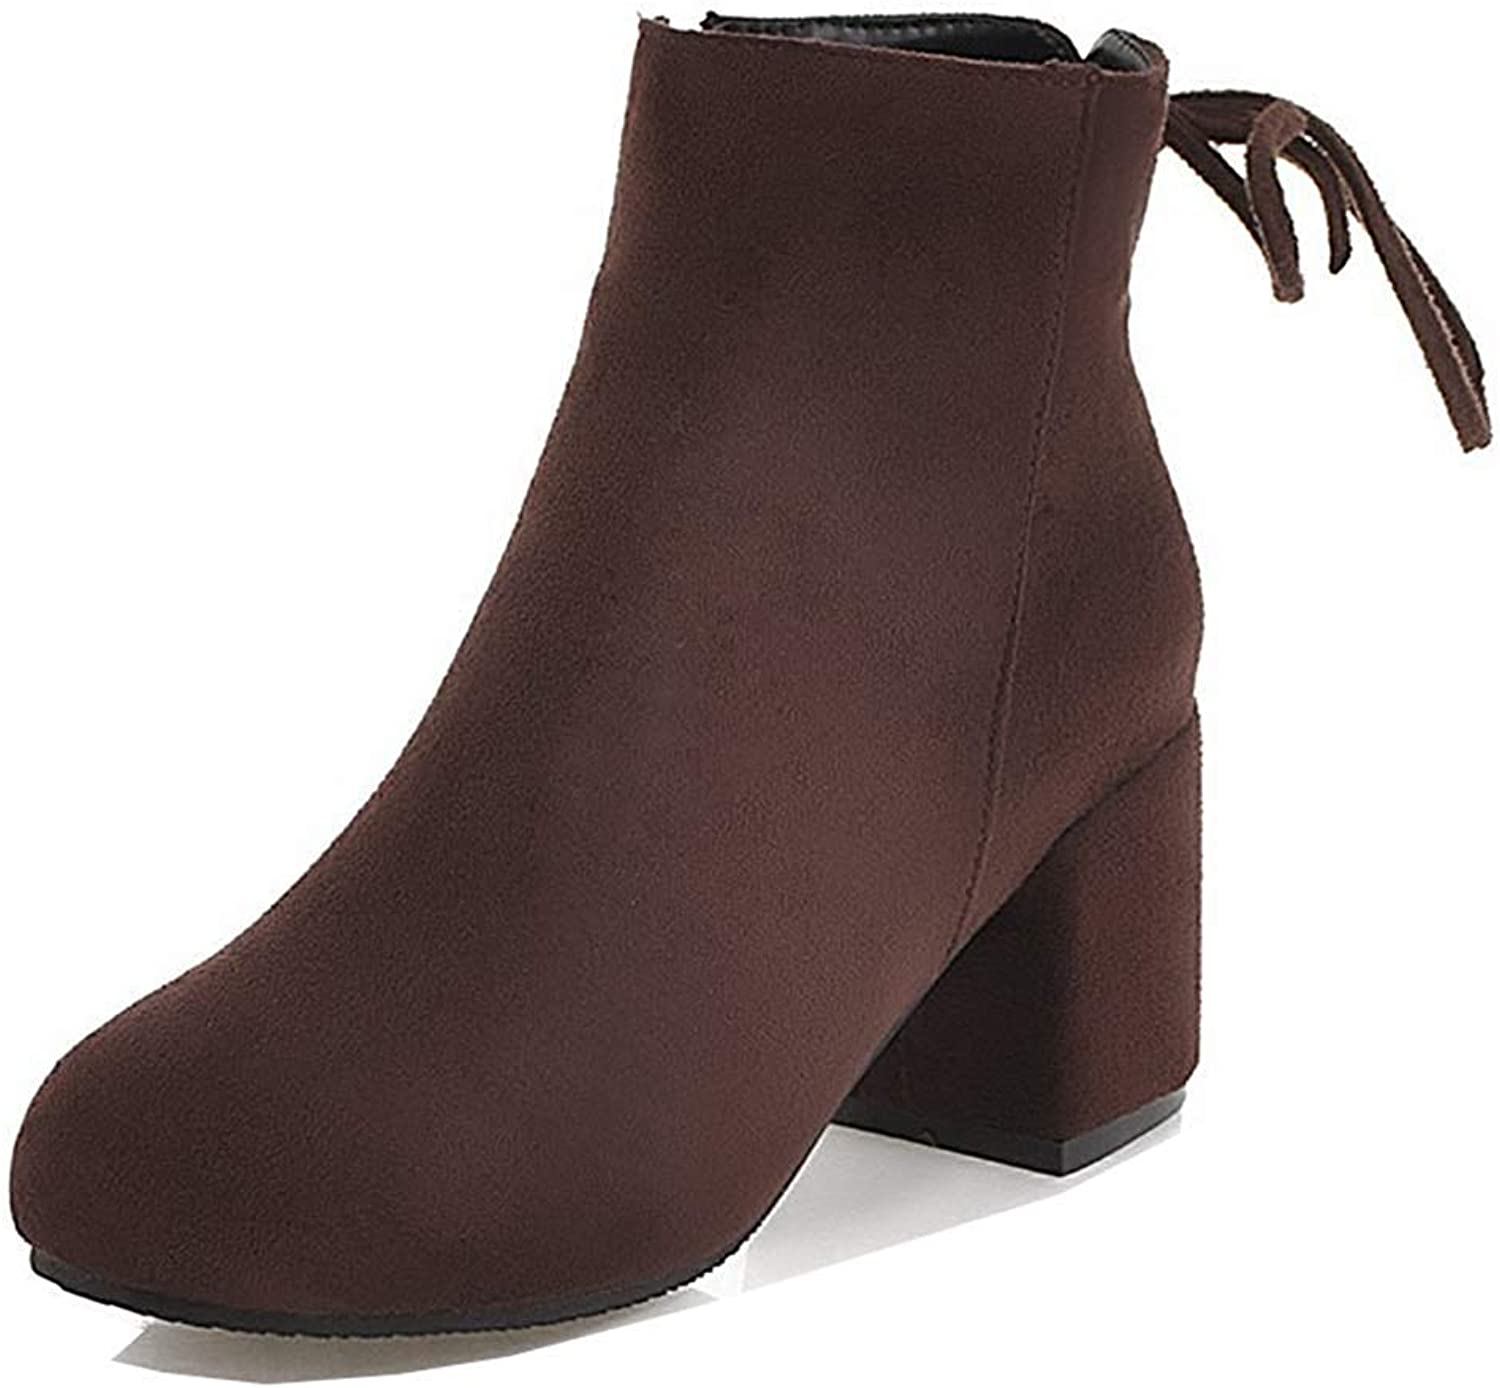 Unm Women's Comfort Simple Mid Chunky Heel Faux Suede Round Toe Dress Ankle Boots with Zipper